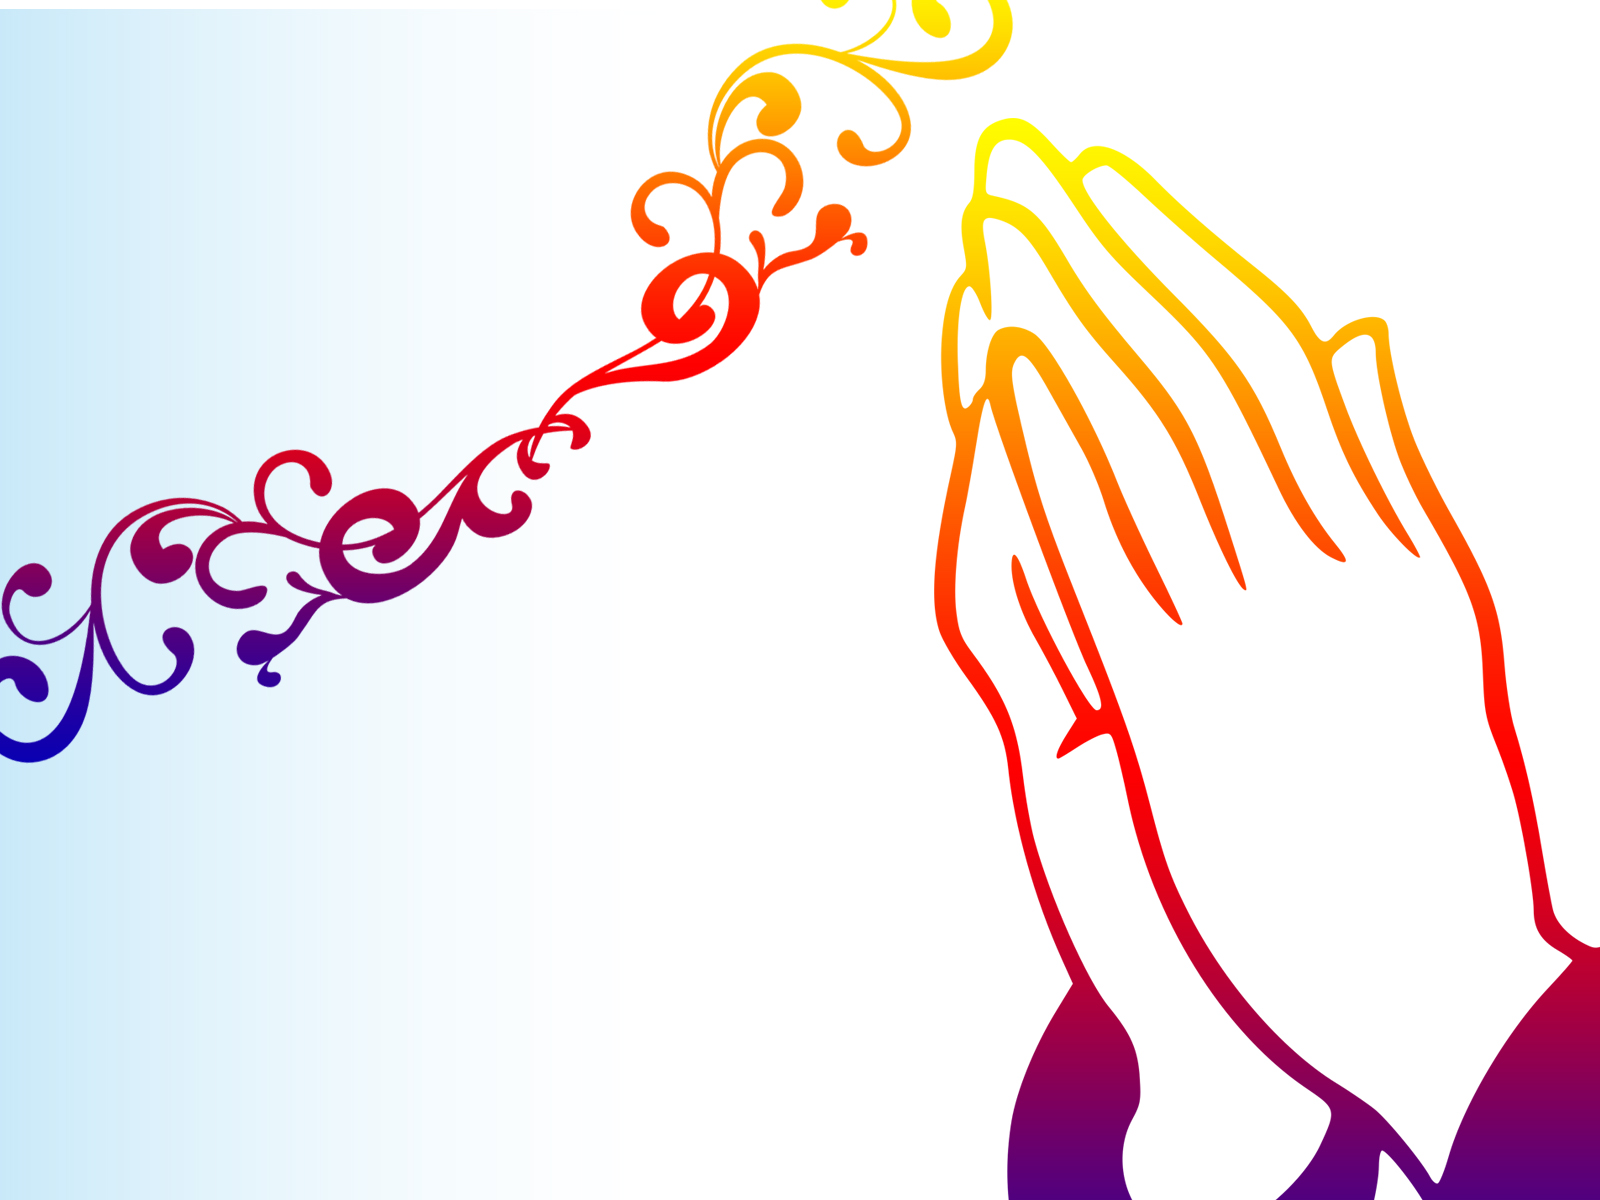 Praying Hands Backgrounds - Orange, Religious - PPT Backgrounds